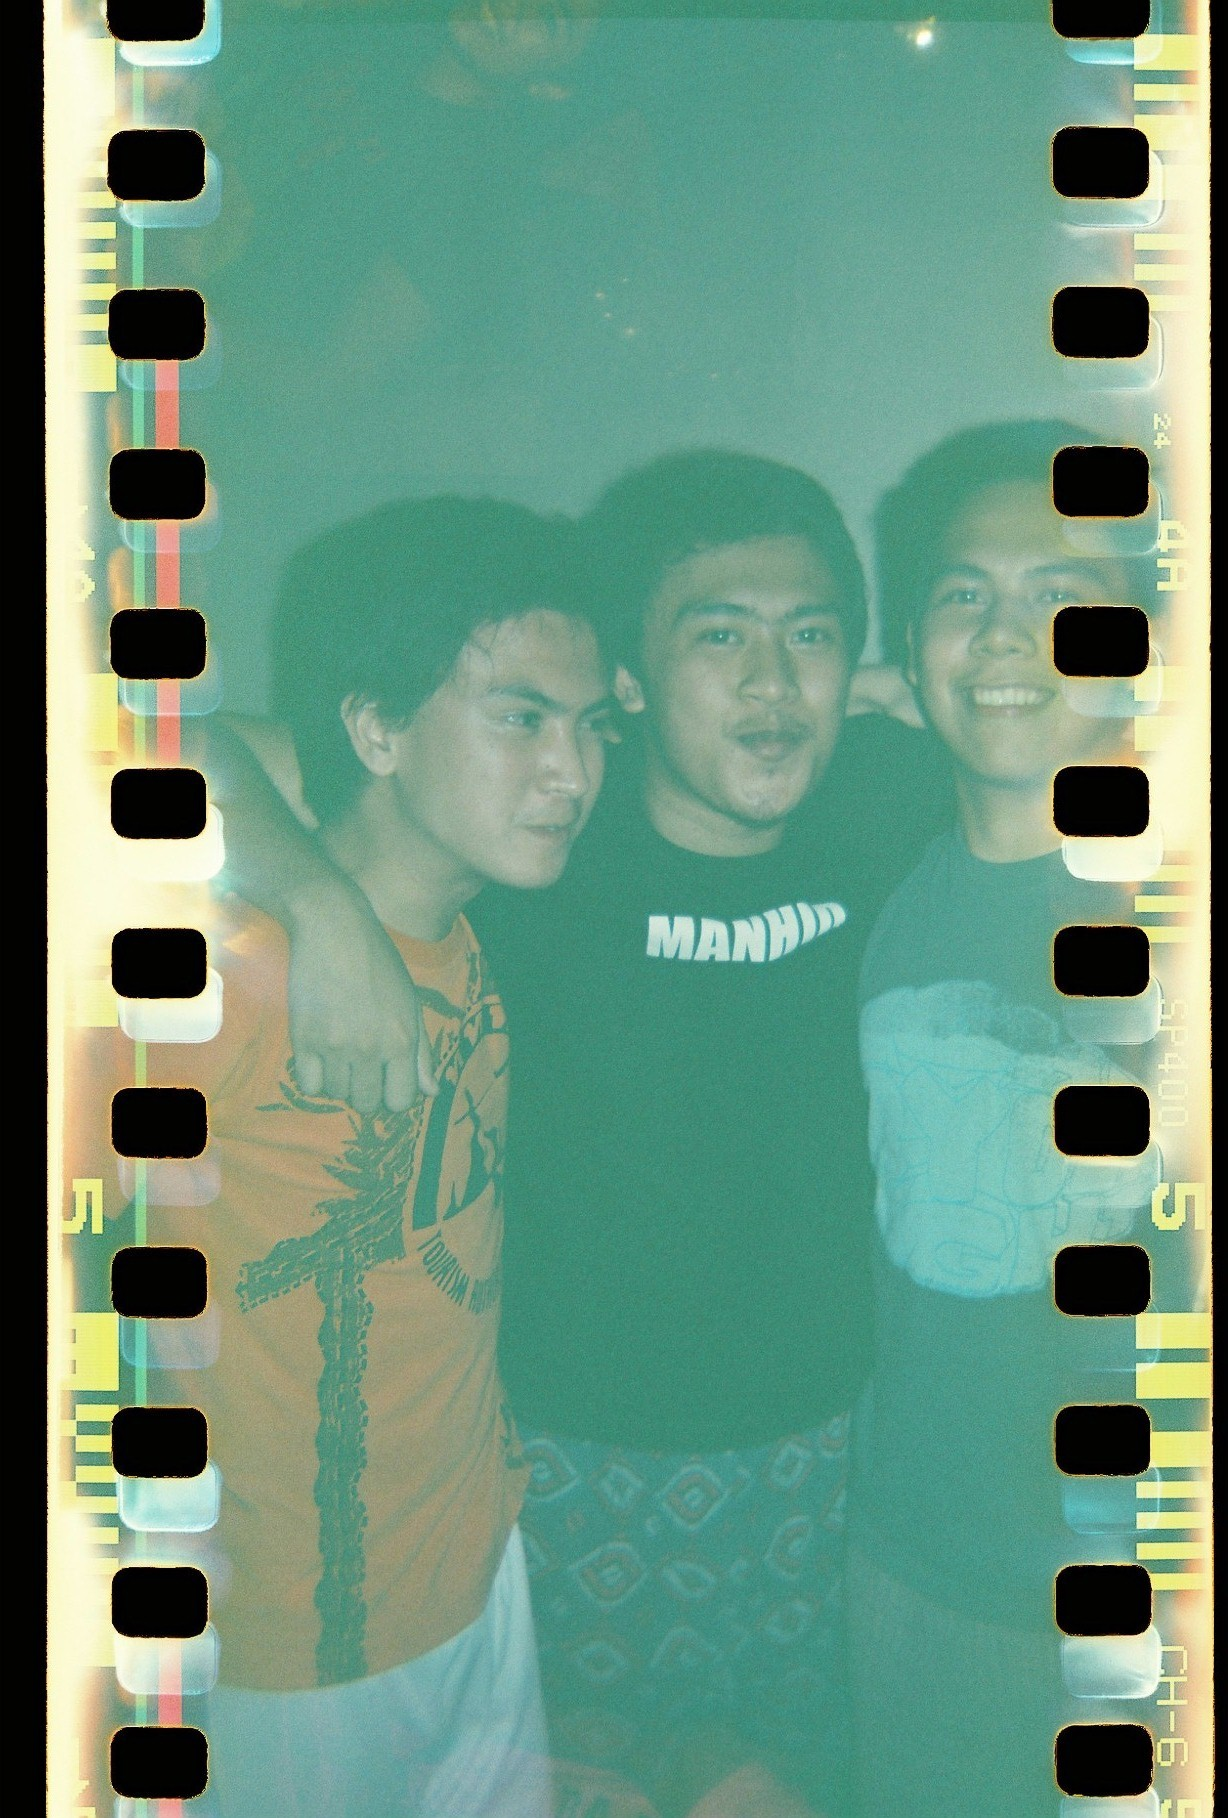 missing Saturday nights w the boysFuji Provia, Holga 120 CFN